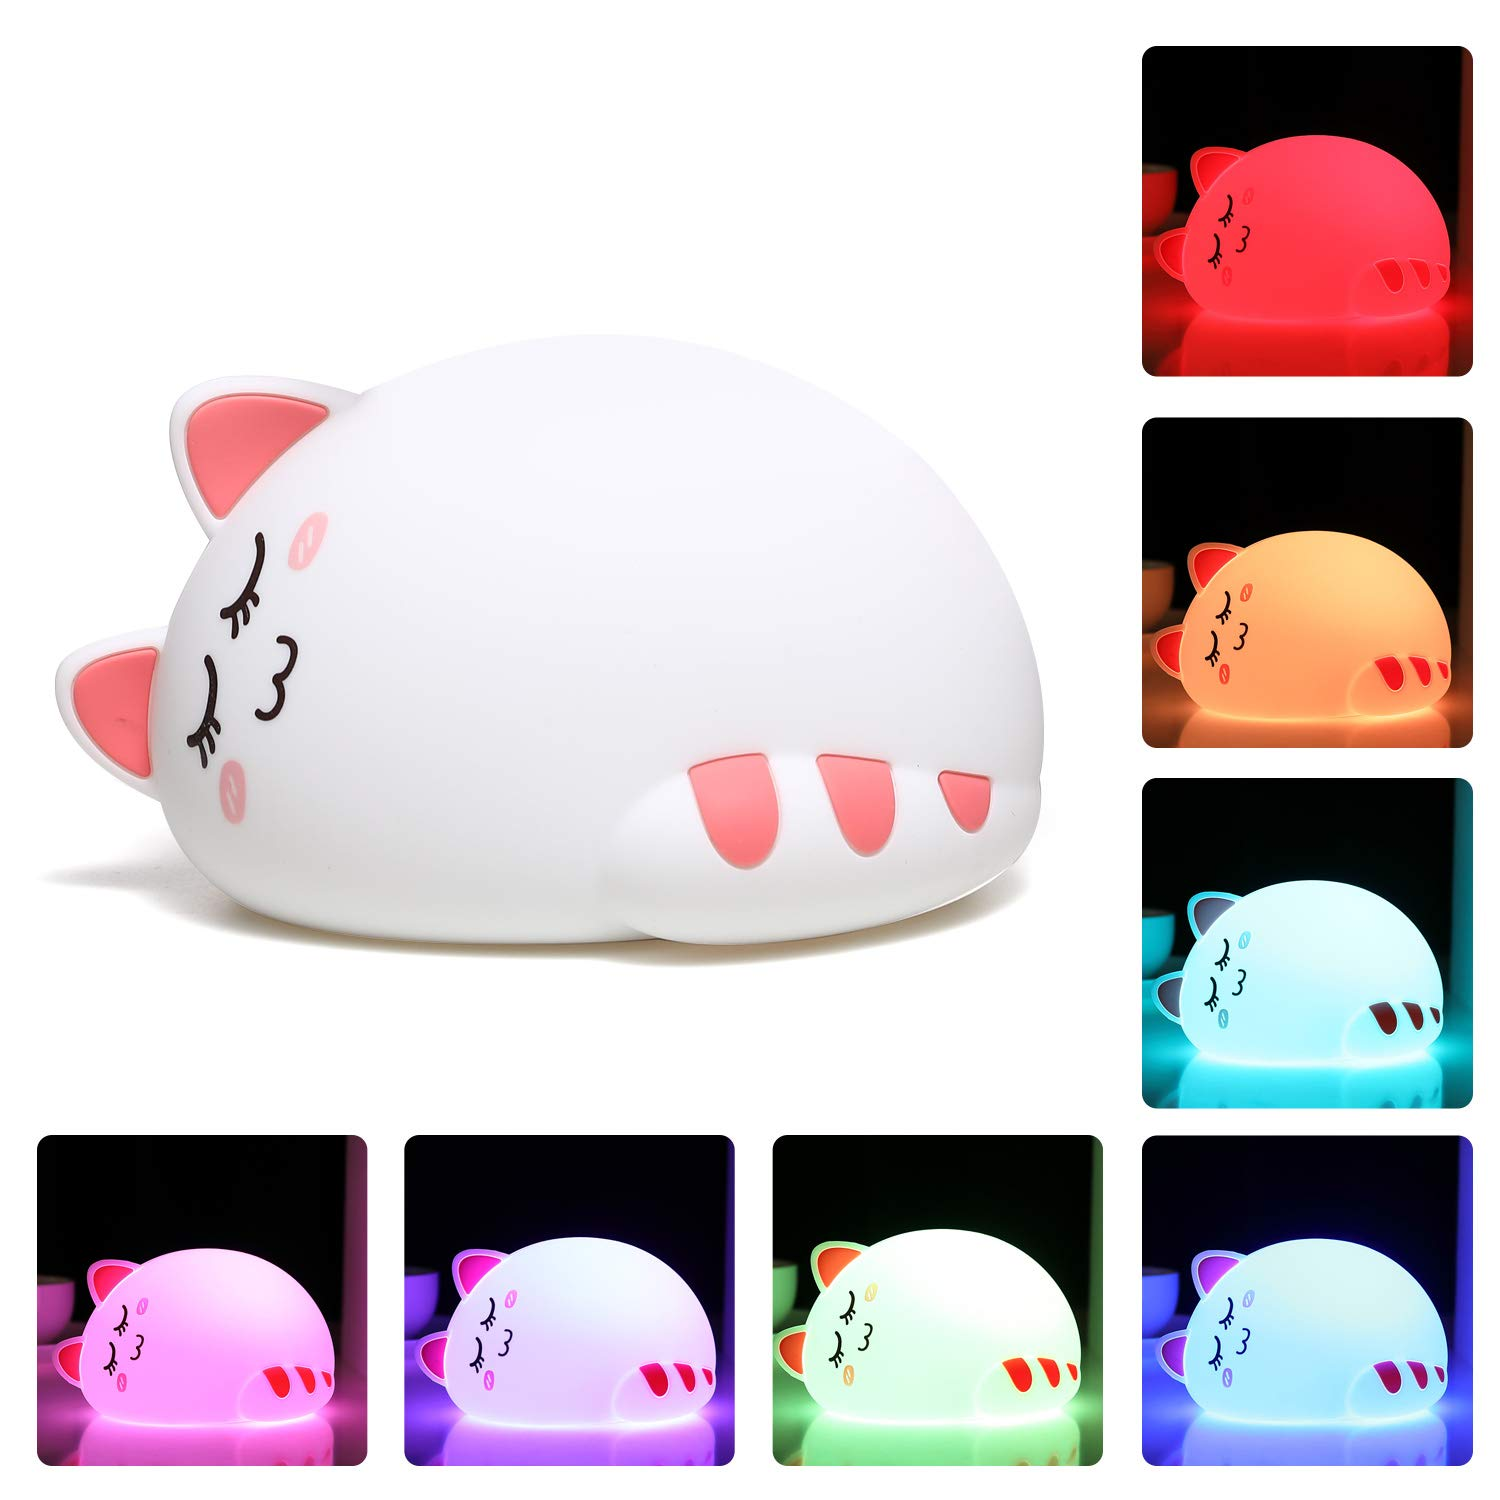 One Fire Baby LED Nursery Night Light for Kids, Tap Control Soft Silicone Bedroom Beside Lamp, Crib Cute Cat Breastfeeding Nightlight Best Gift for Newborn Toddler Children Infant Boys Girls (Sleep)